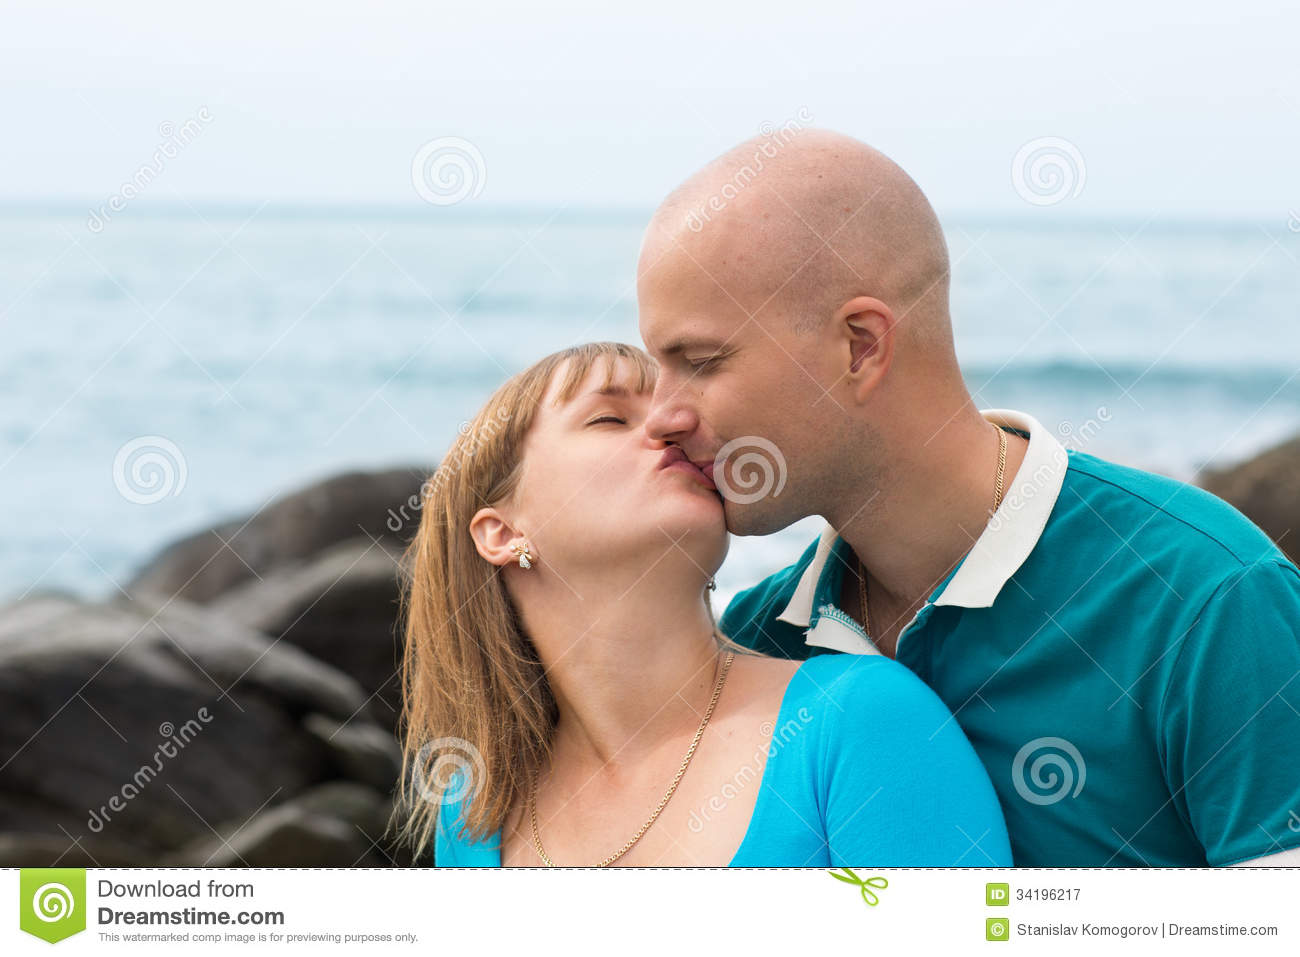 Little Girl Booty Stock Photos and Pictures | Getty Images